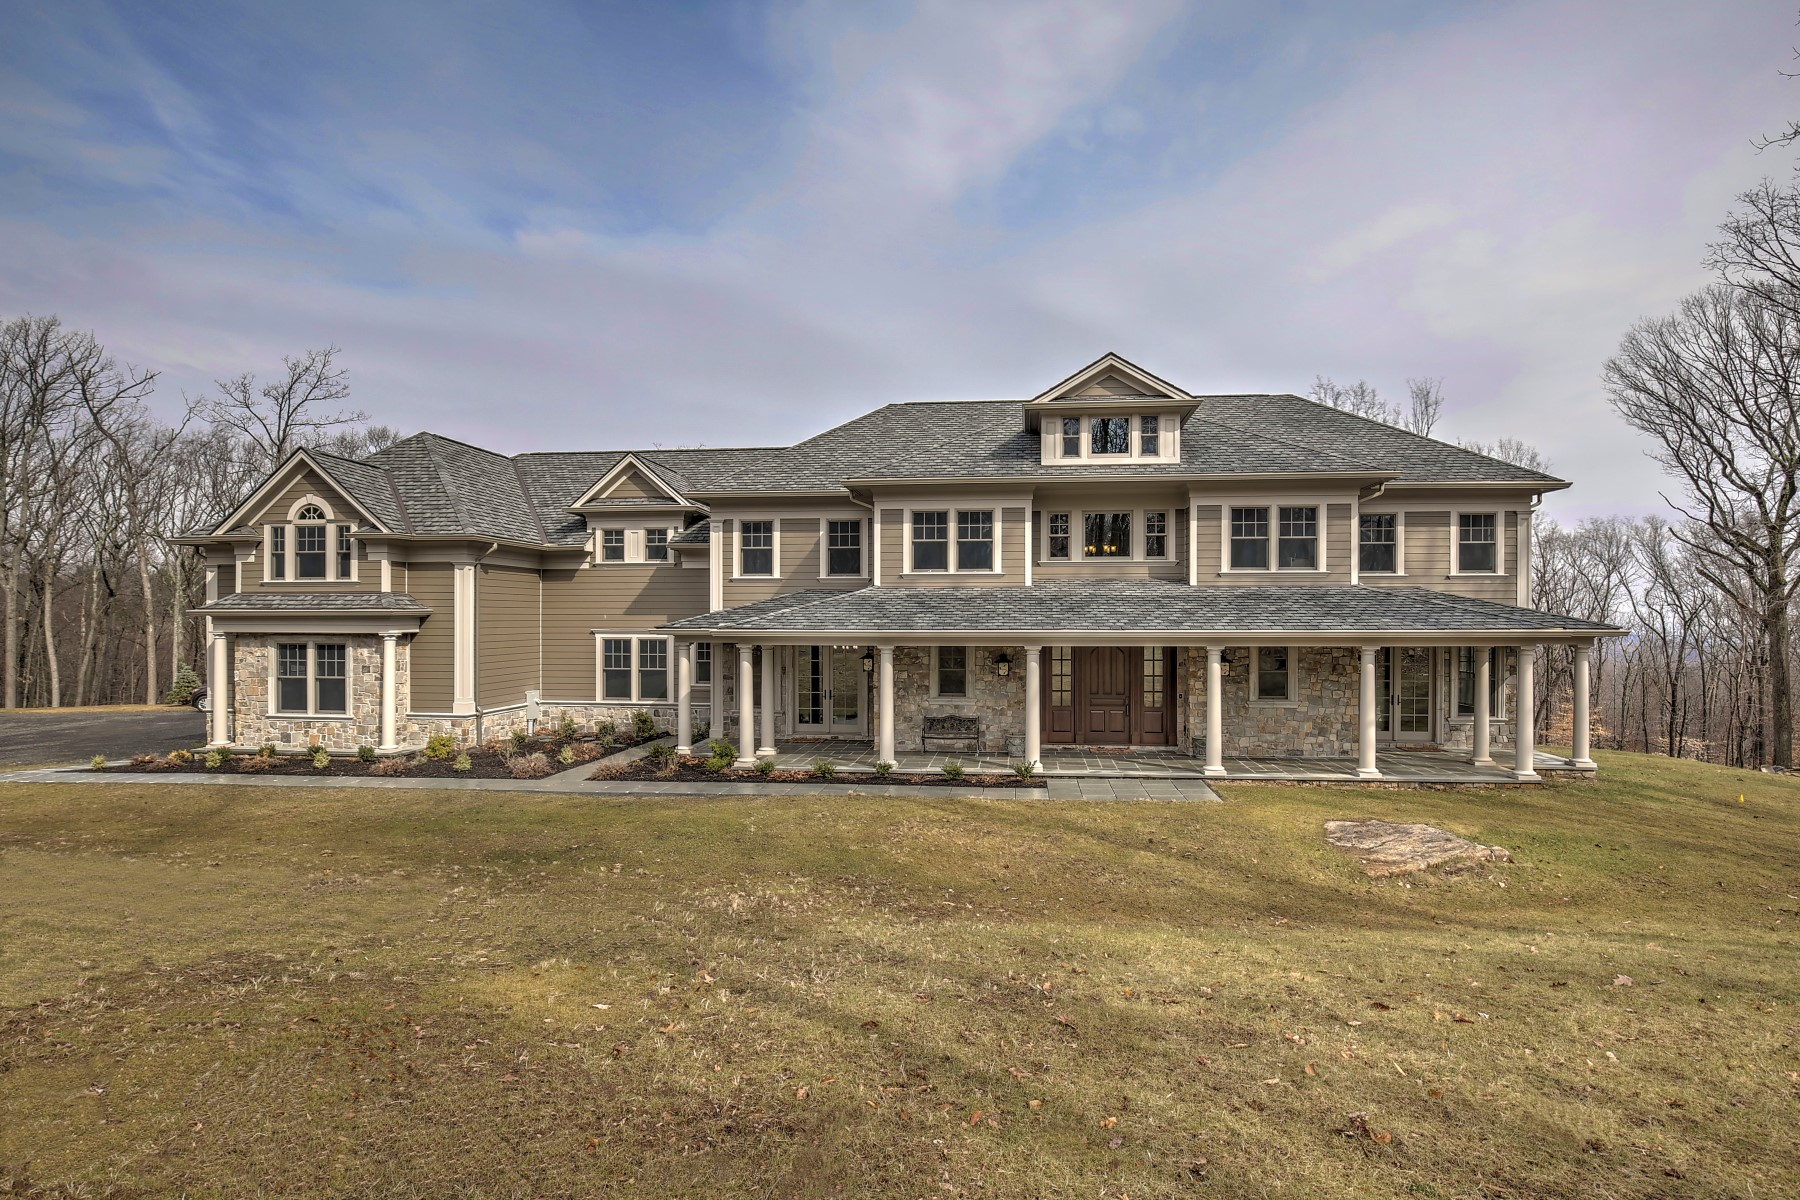 独户住宅 为 销售 在 Bernardsville Mountain New Construction 111 Boulderwood Drive 伯纳兹维尔, 07924 美国